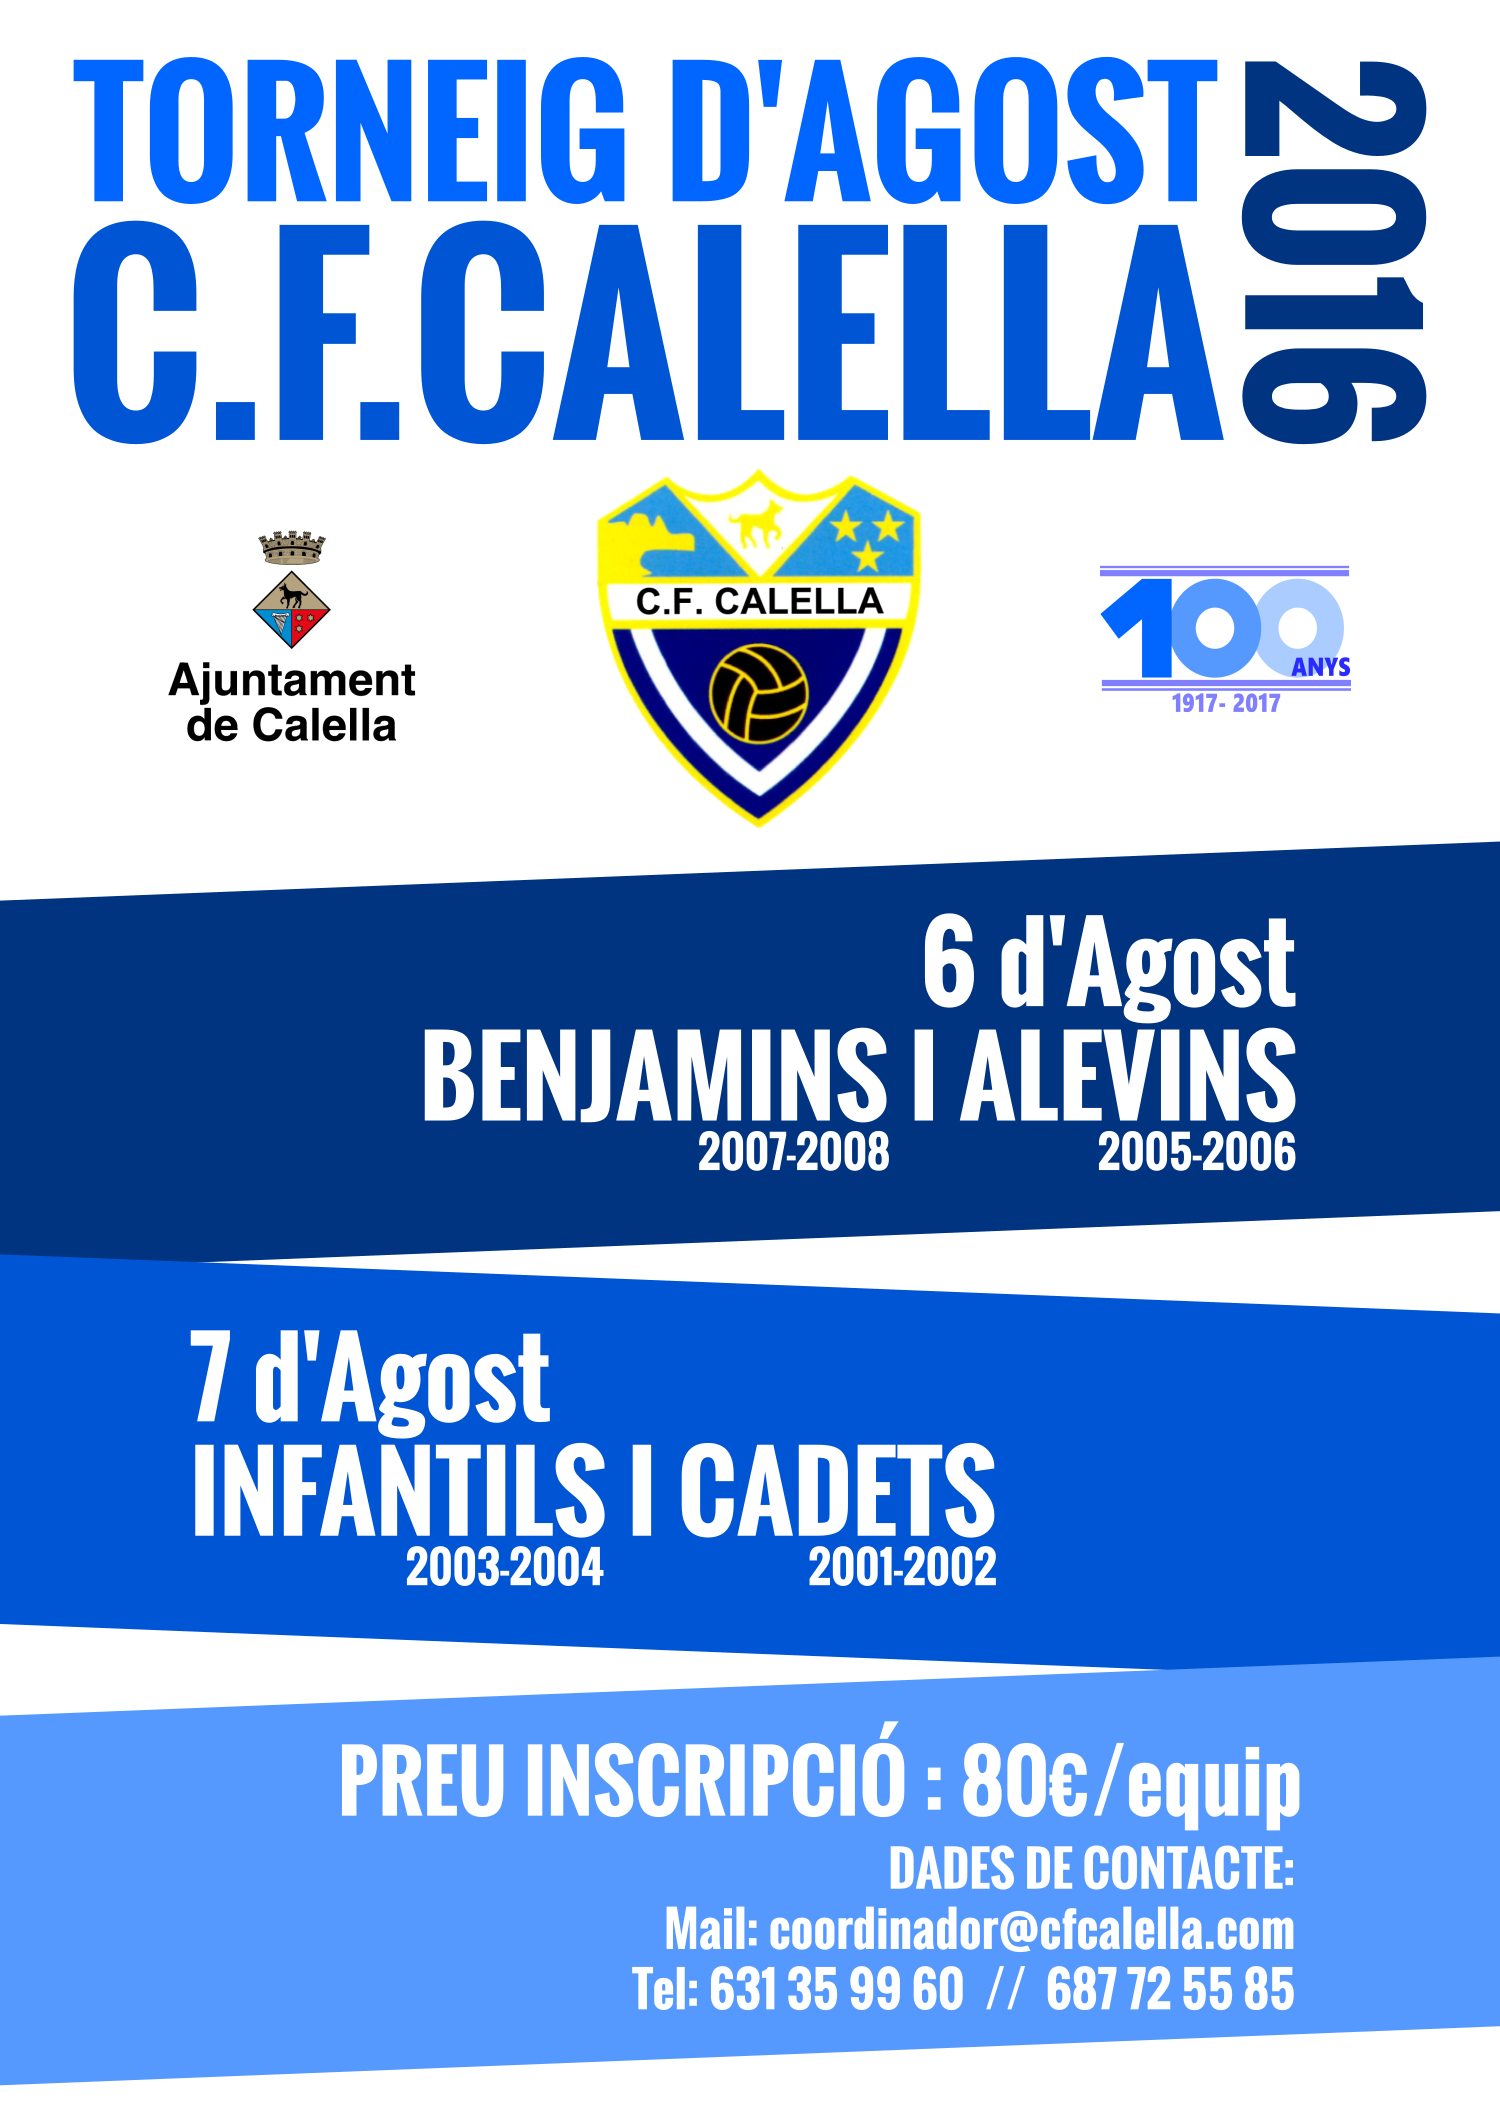 Torneig Agost 2016 CFCalella